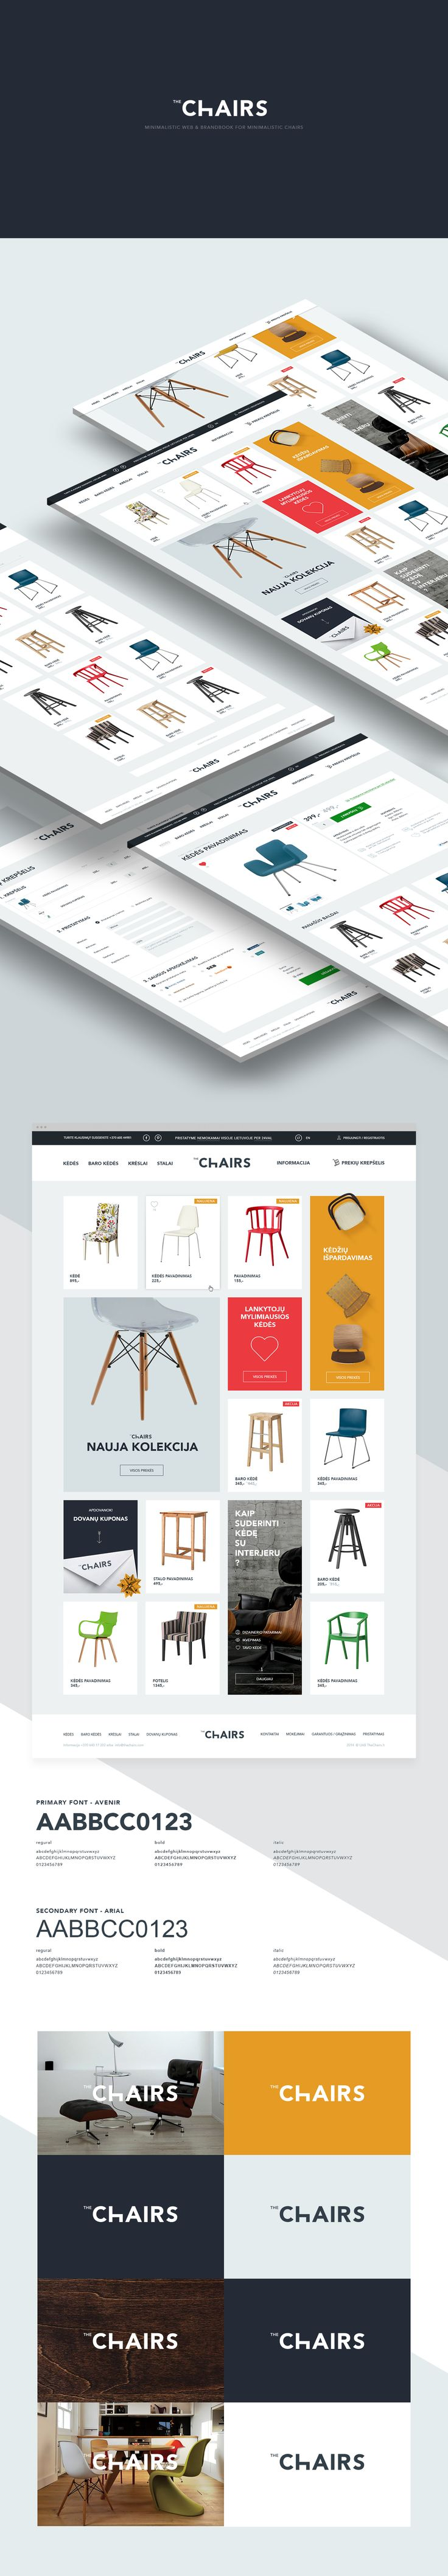 The Chairs on Behance